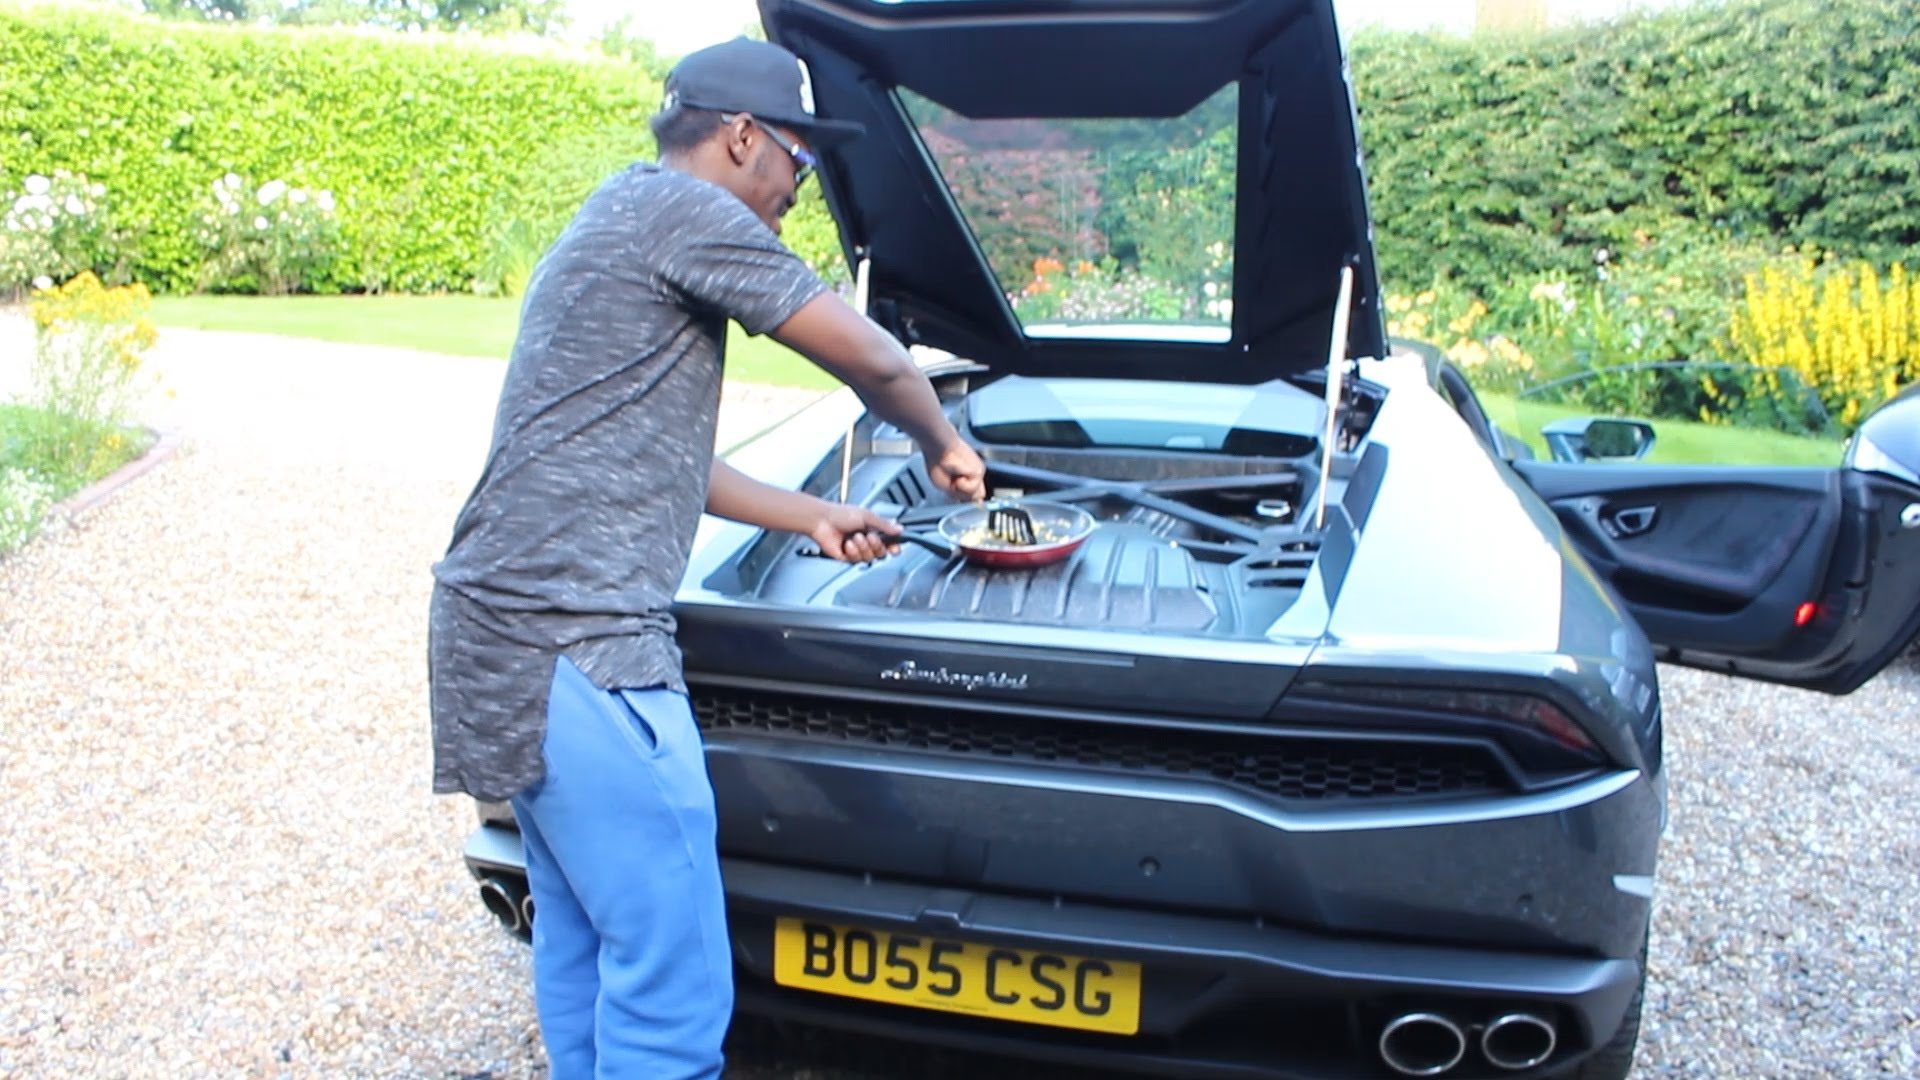 The Lamborghini Huracan Gets So Hot You Can Cook An Egg On It